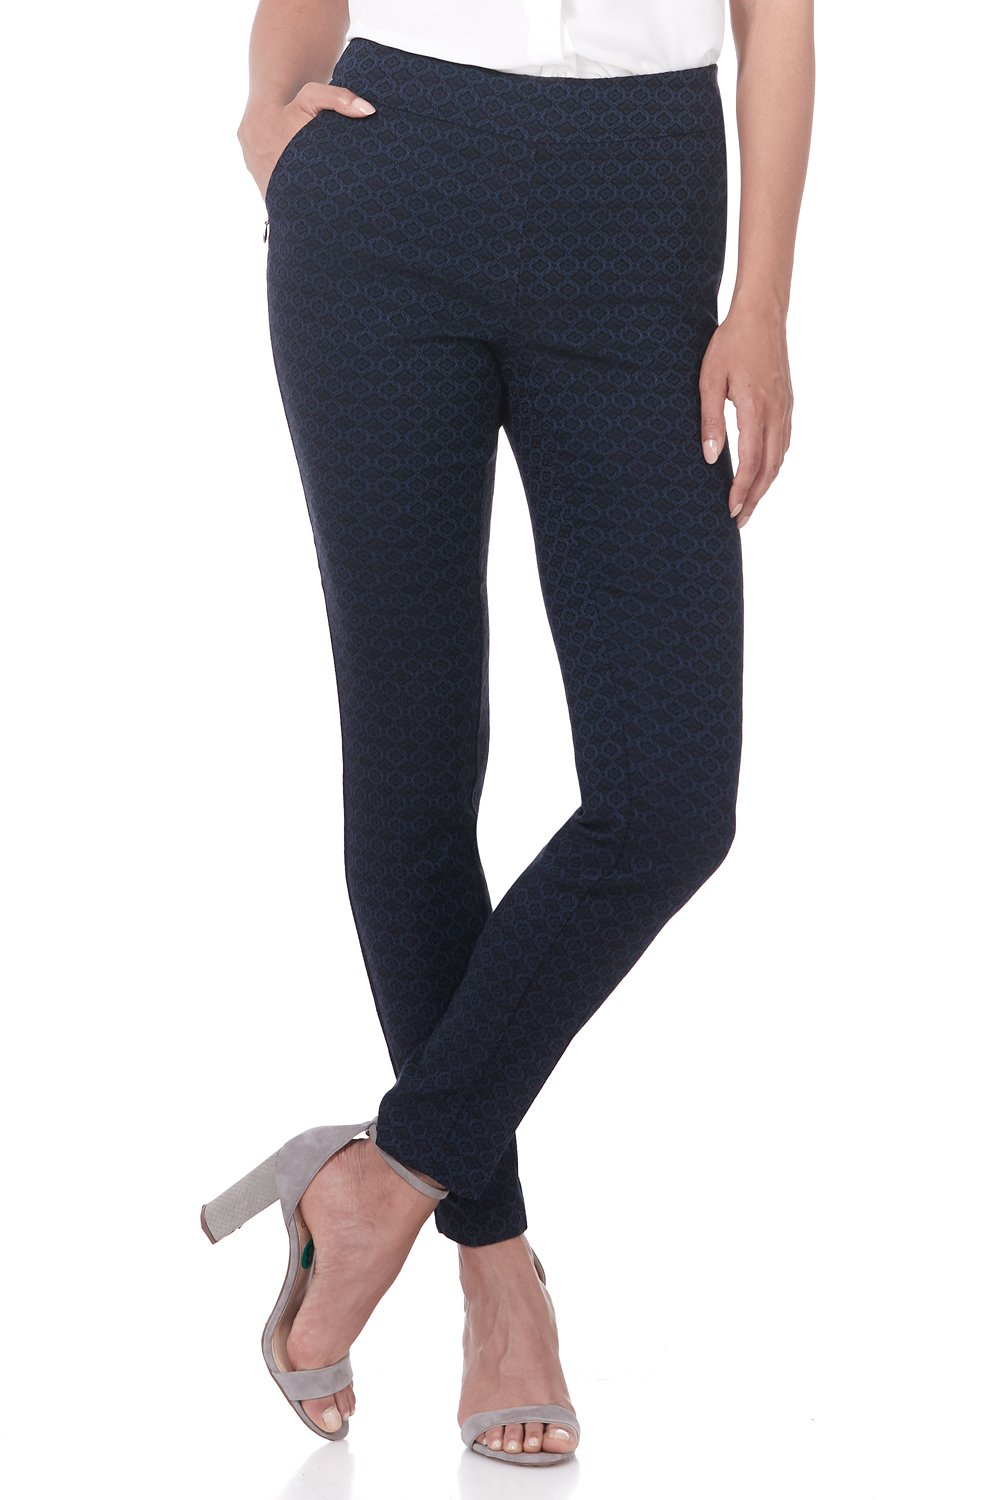 Rekucci Women's Ease in to Comfort Modern Stretch Skinny Pant w/Tummy Control (12,Navy Floral)